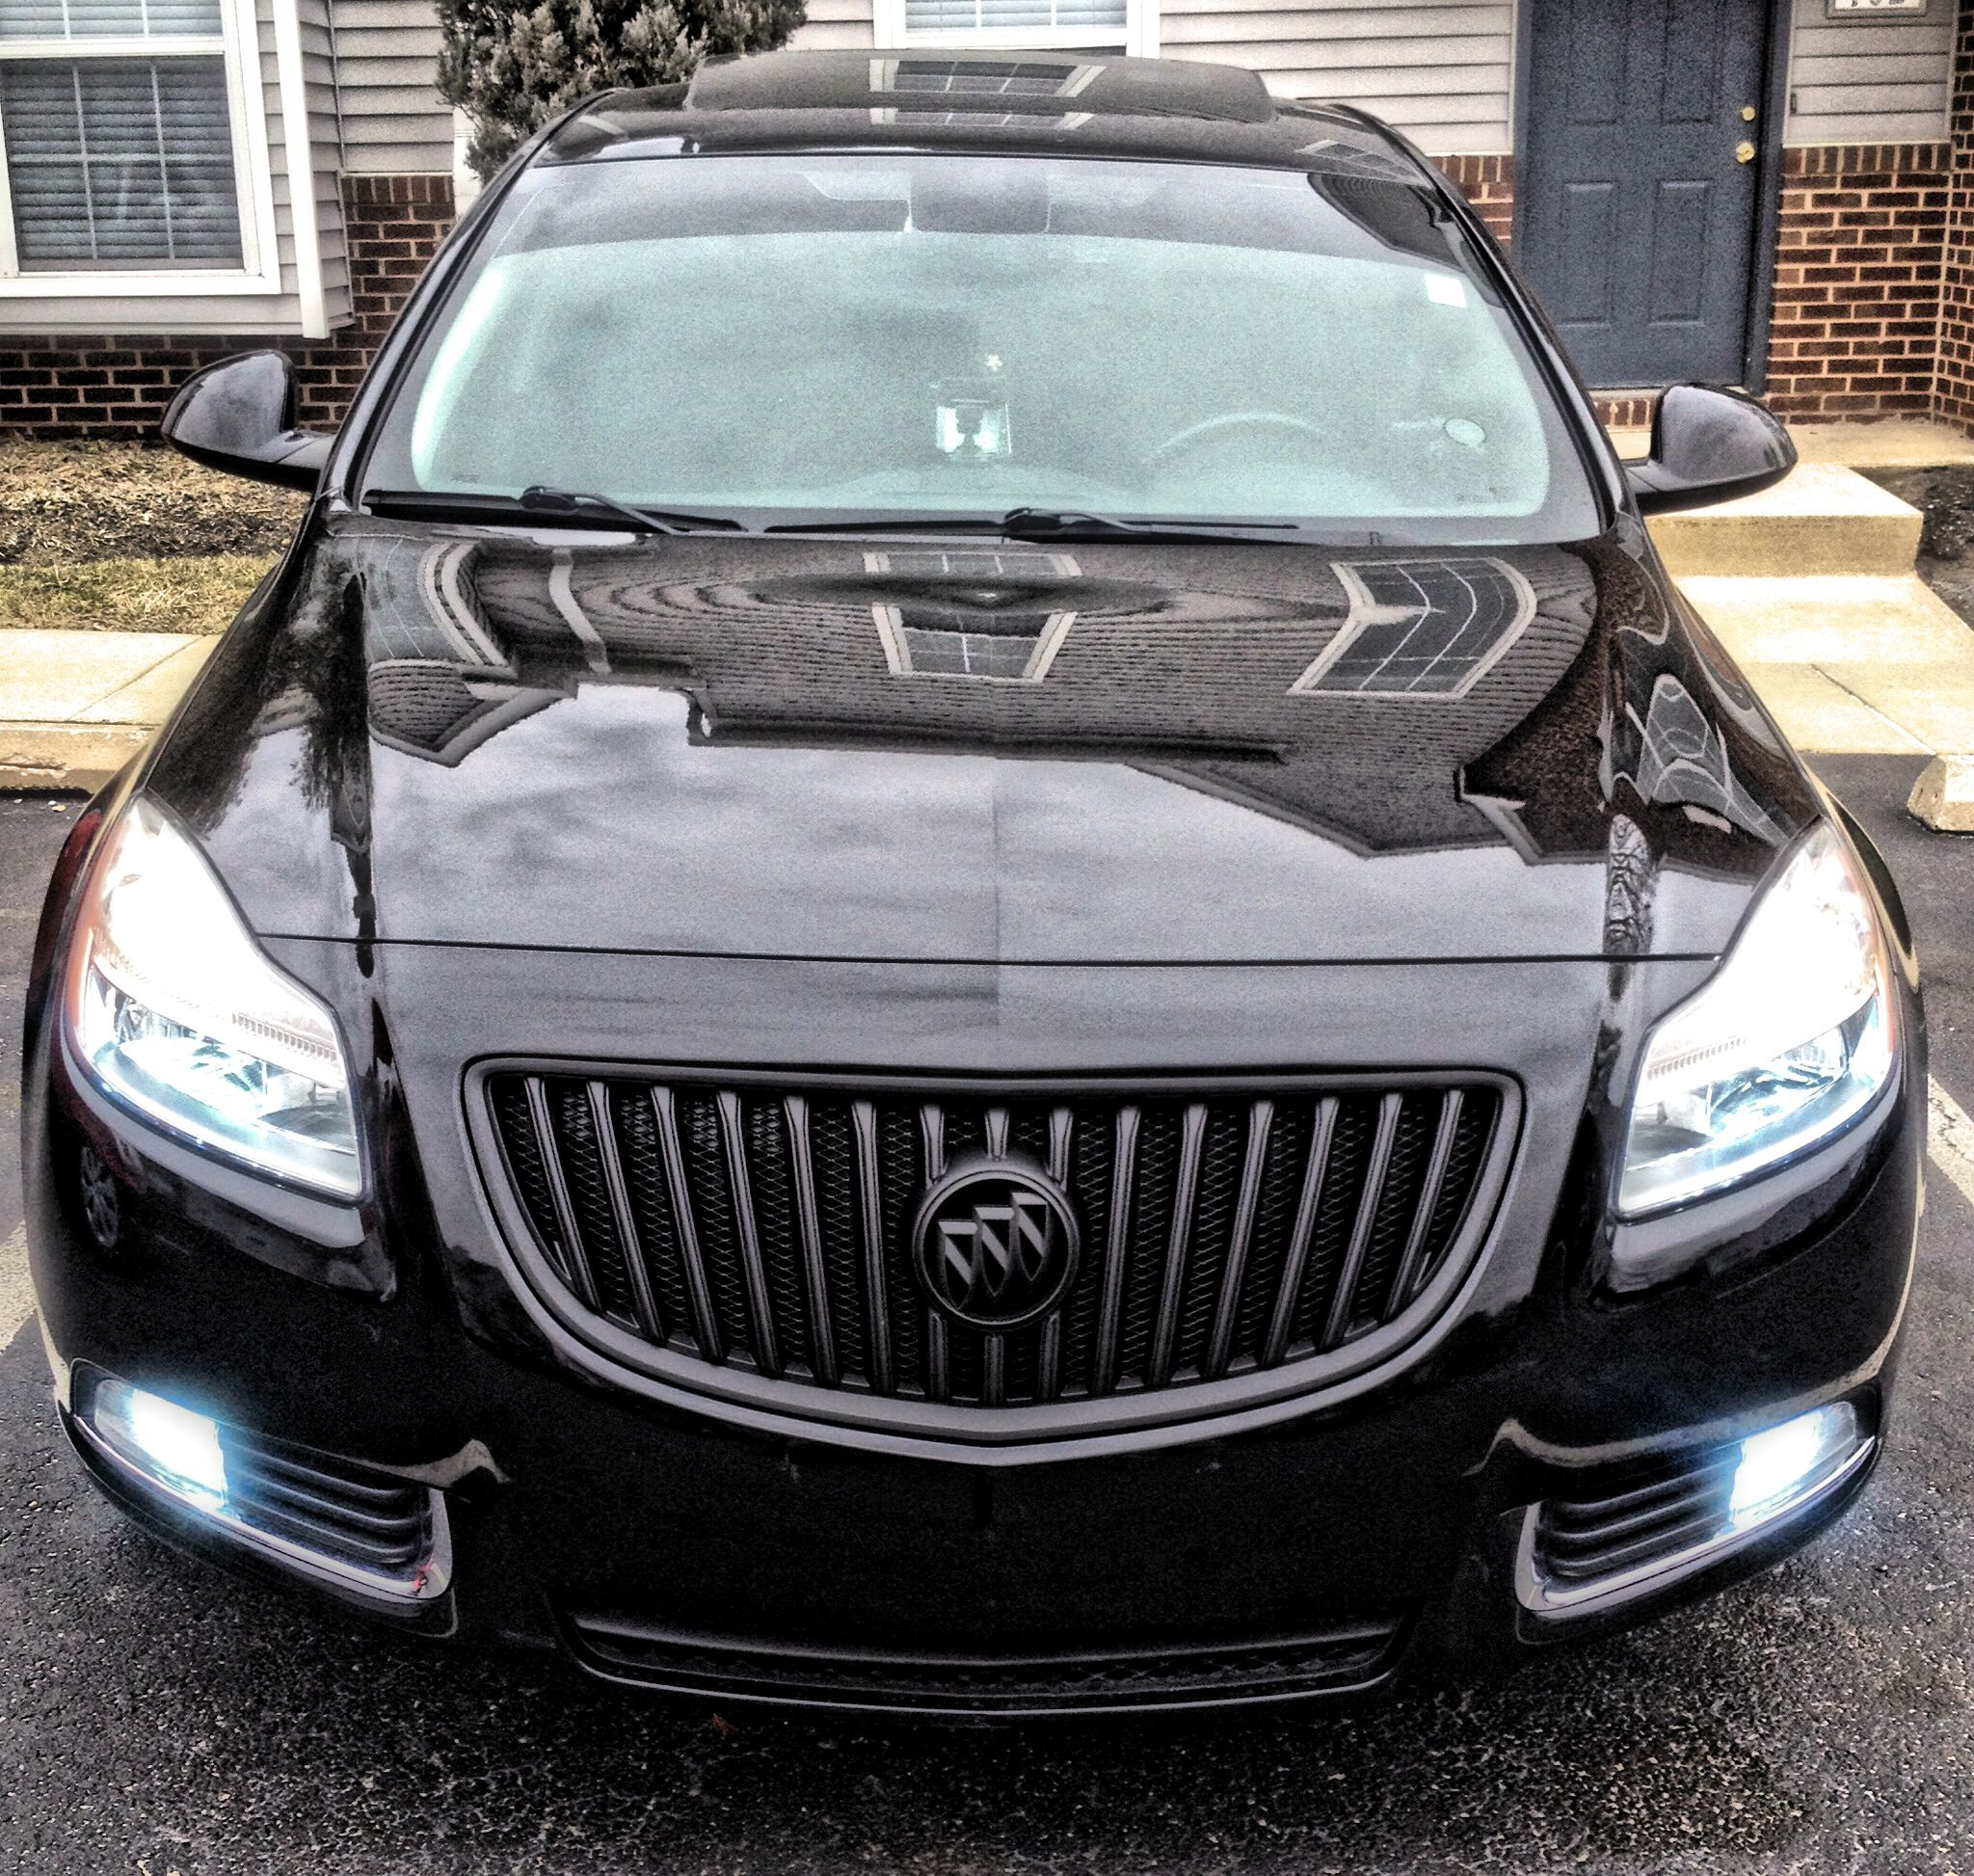 2011 Regal Turbo Plasti Dipped Front Grille 6000k Hid On Fog Lights And Low Beams 20 Window Tint Buick Regal Jaguar F Type Buick